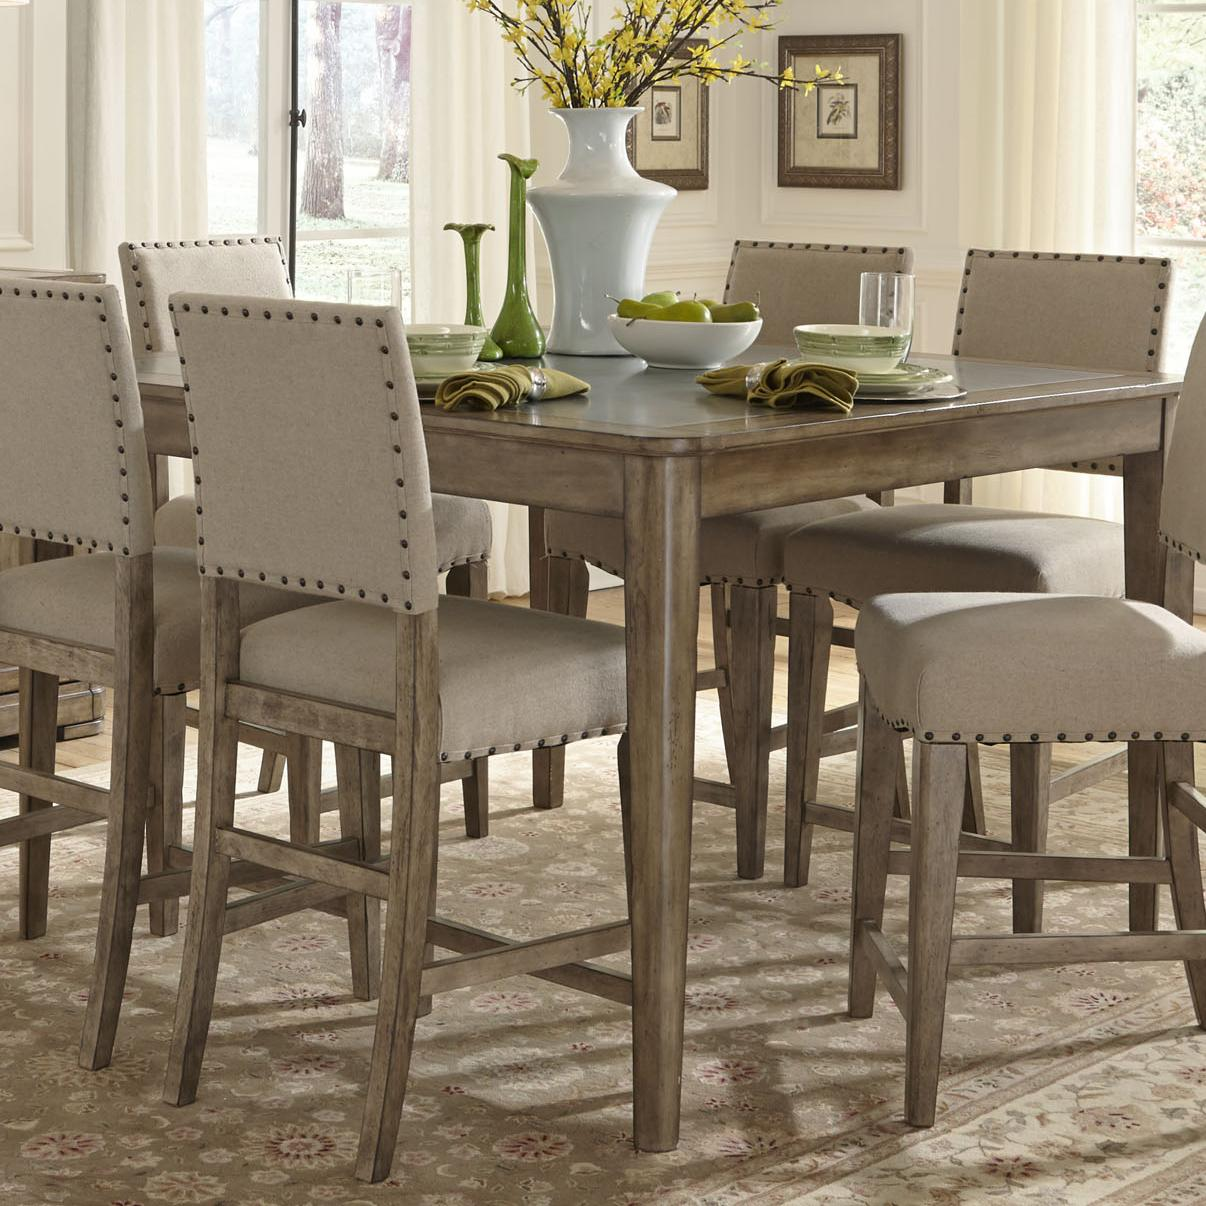 Liberty Furniture Weatherford Rustic Casual Gathering